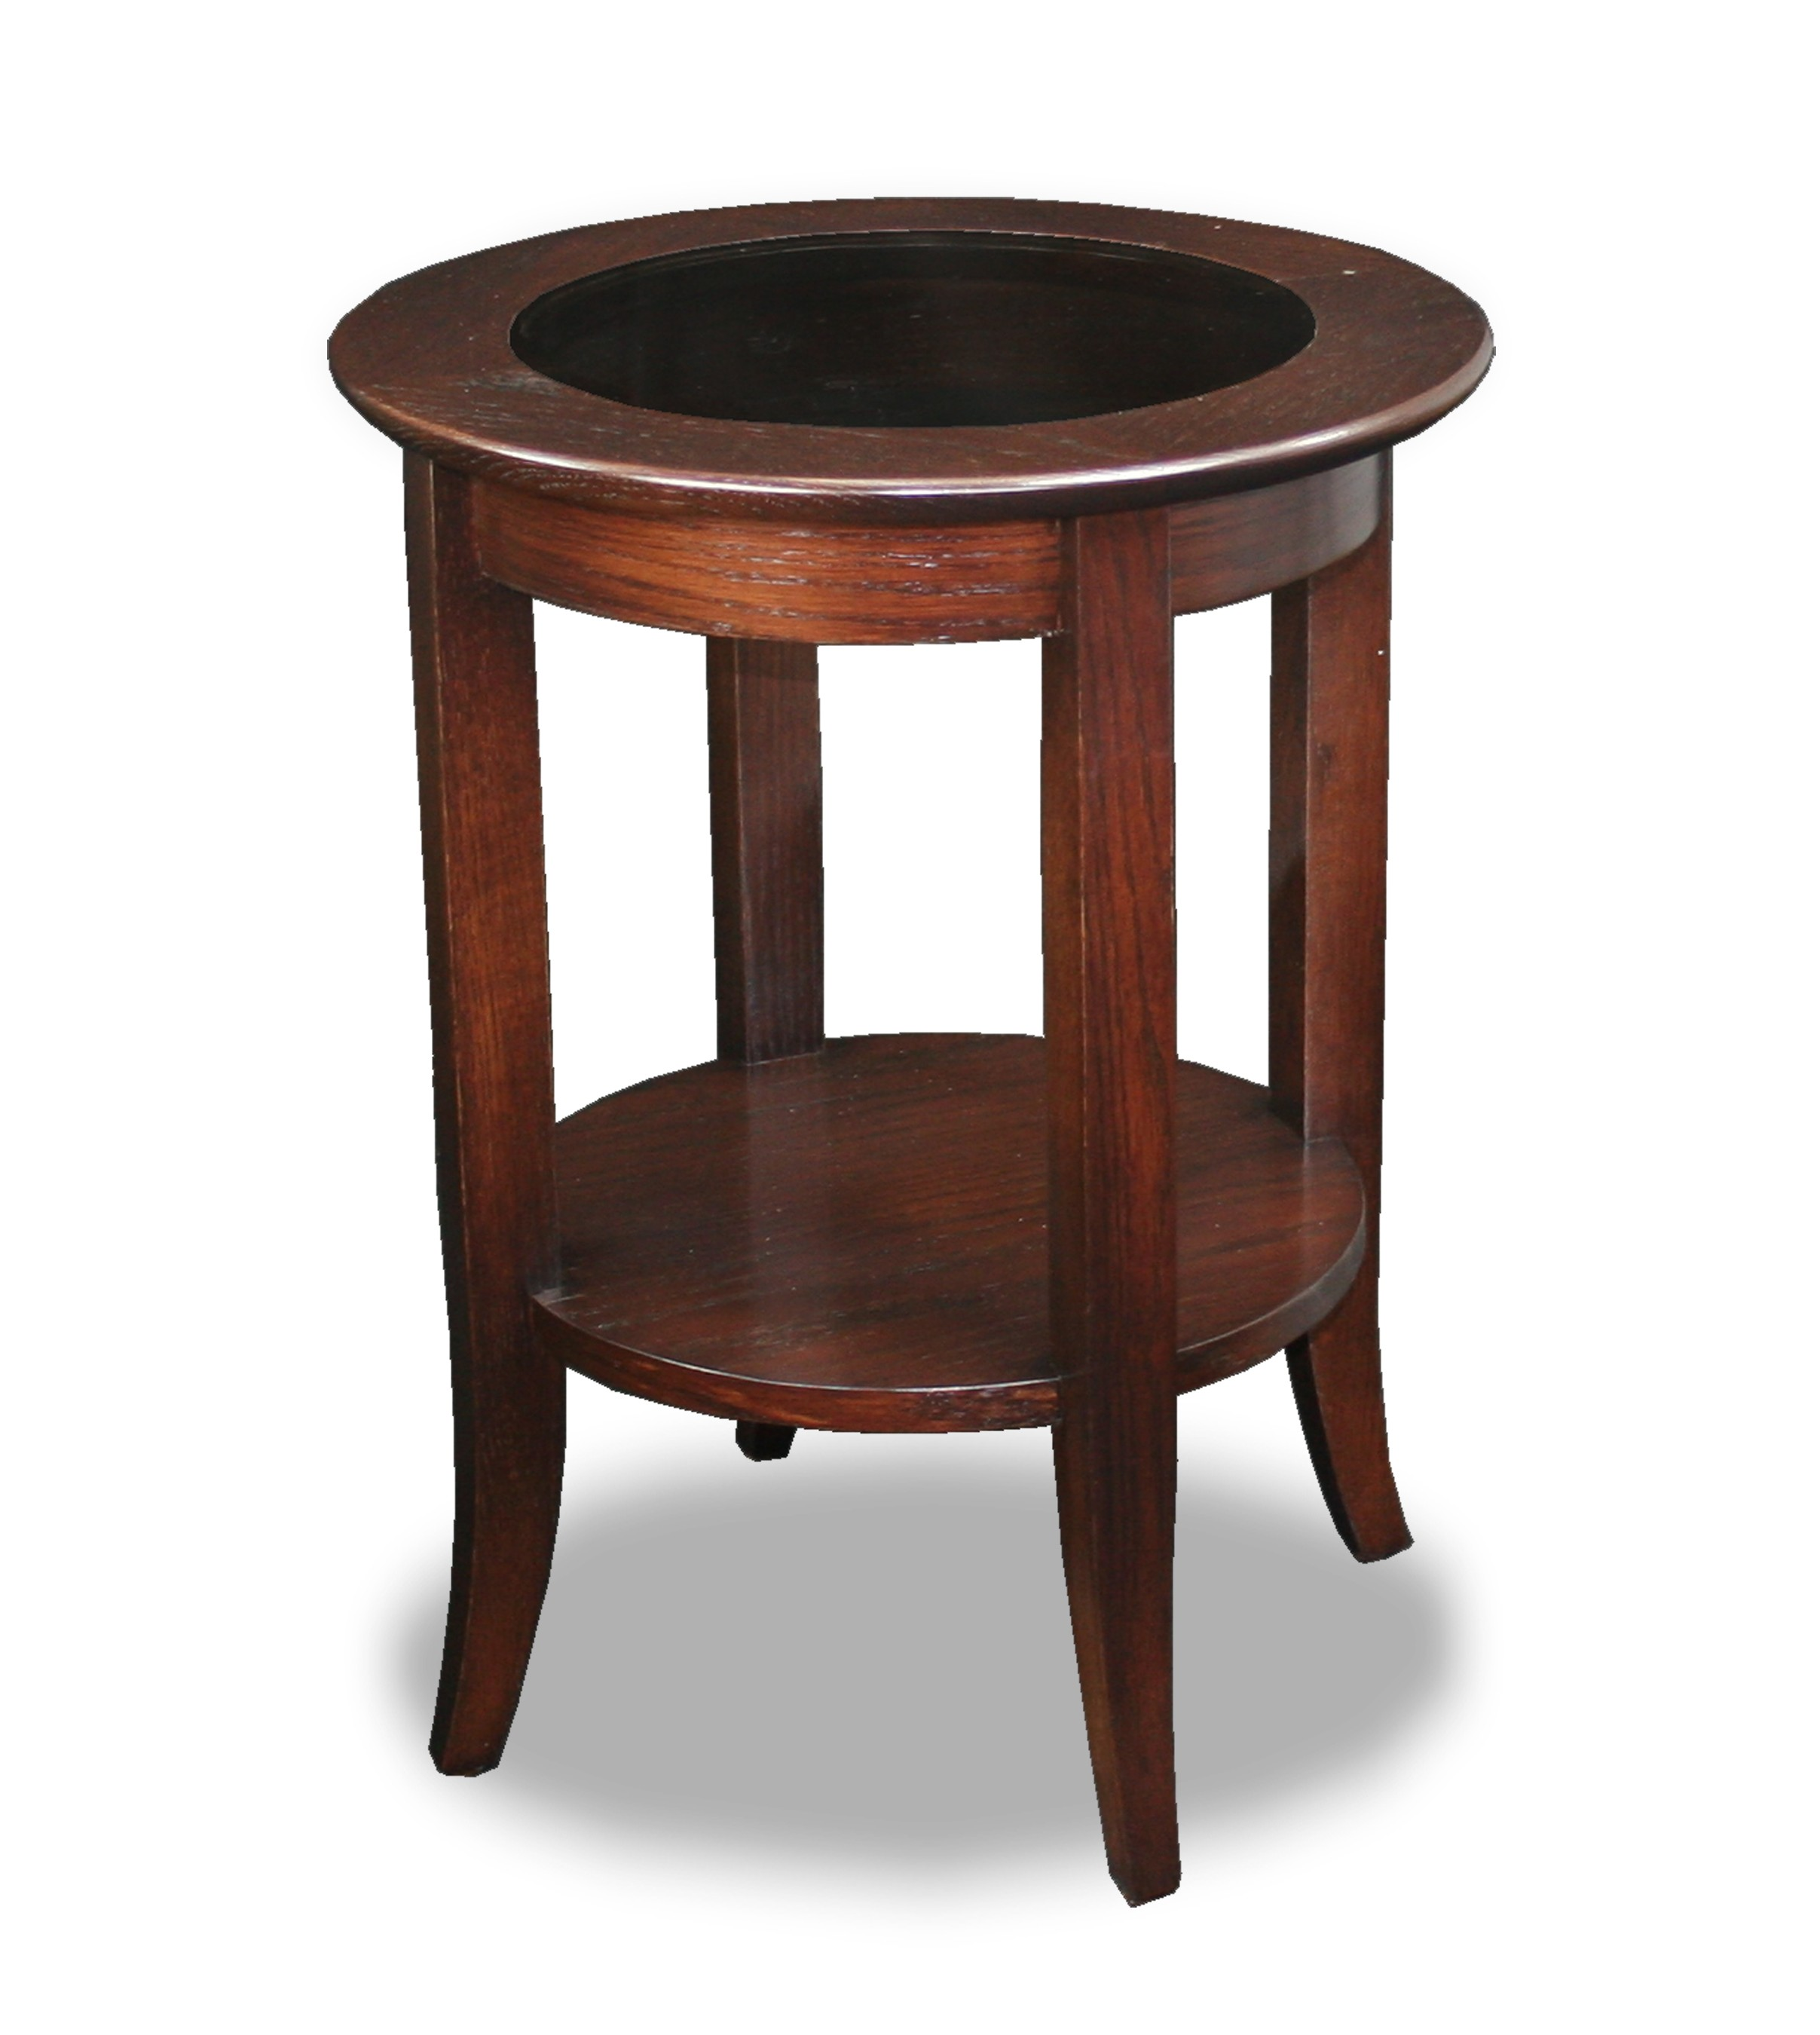 accent tables round table black living room end wood with storage corner for tall side coffee and set dark teal circular drawer full size best small rectangular big green egg